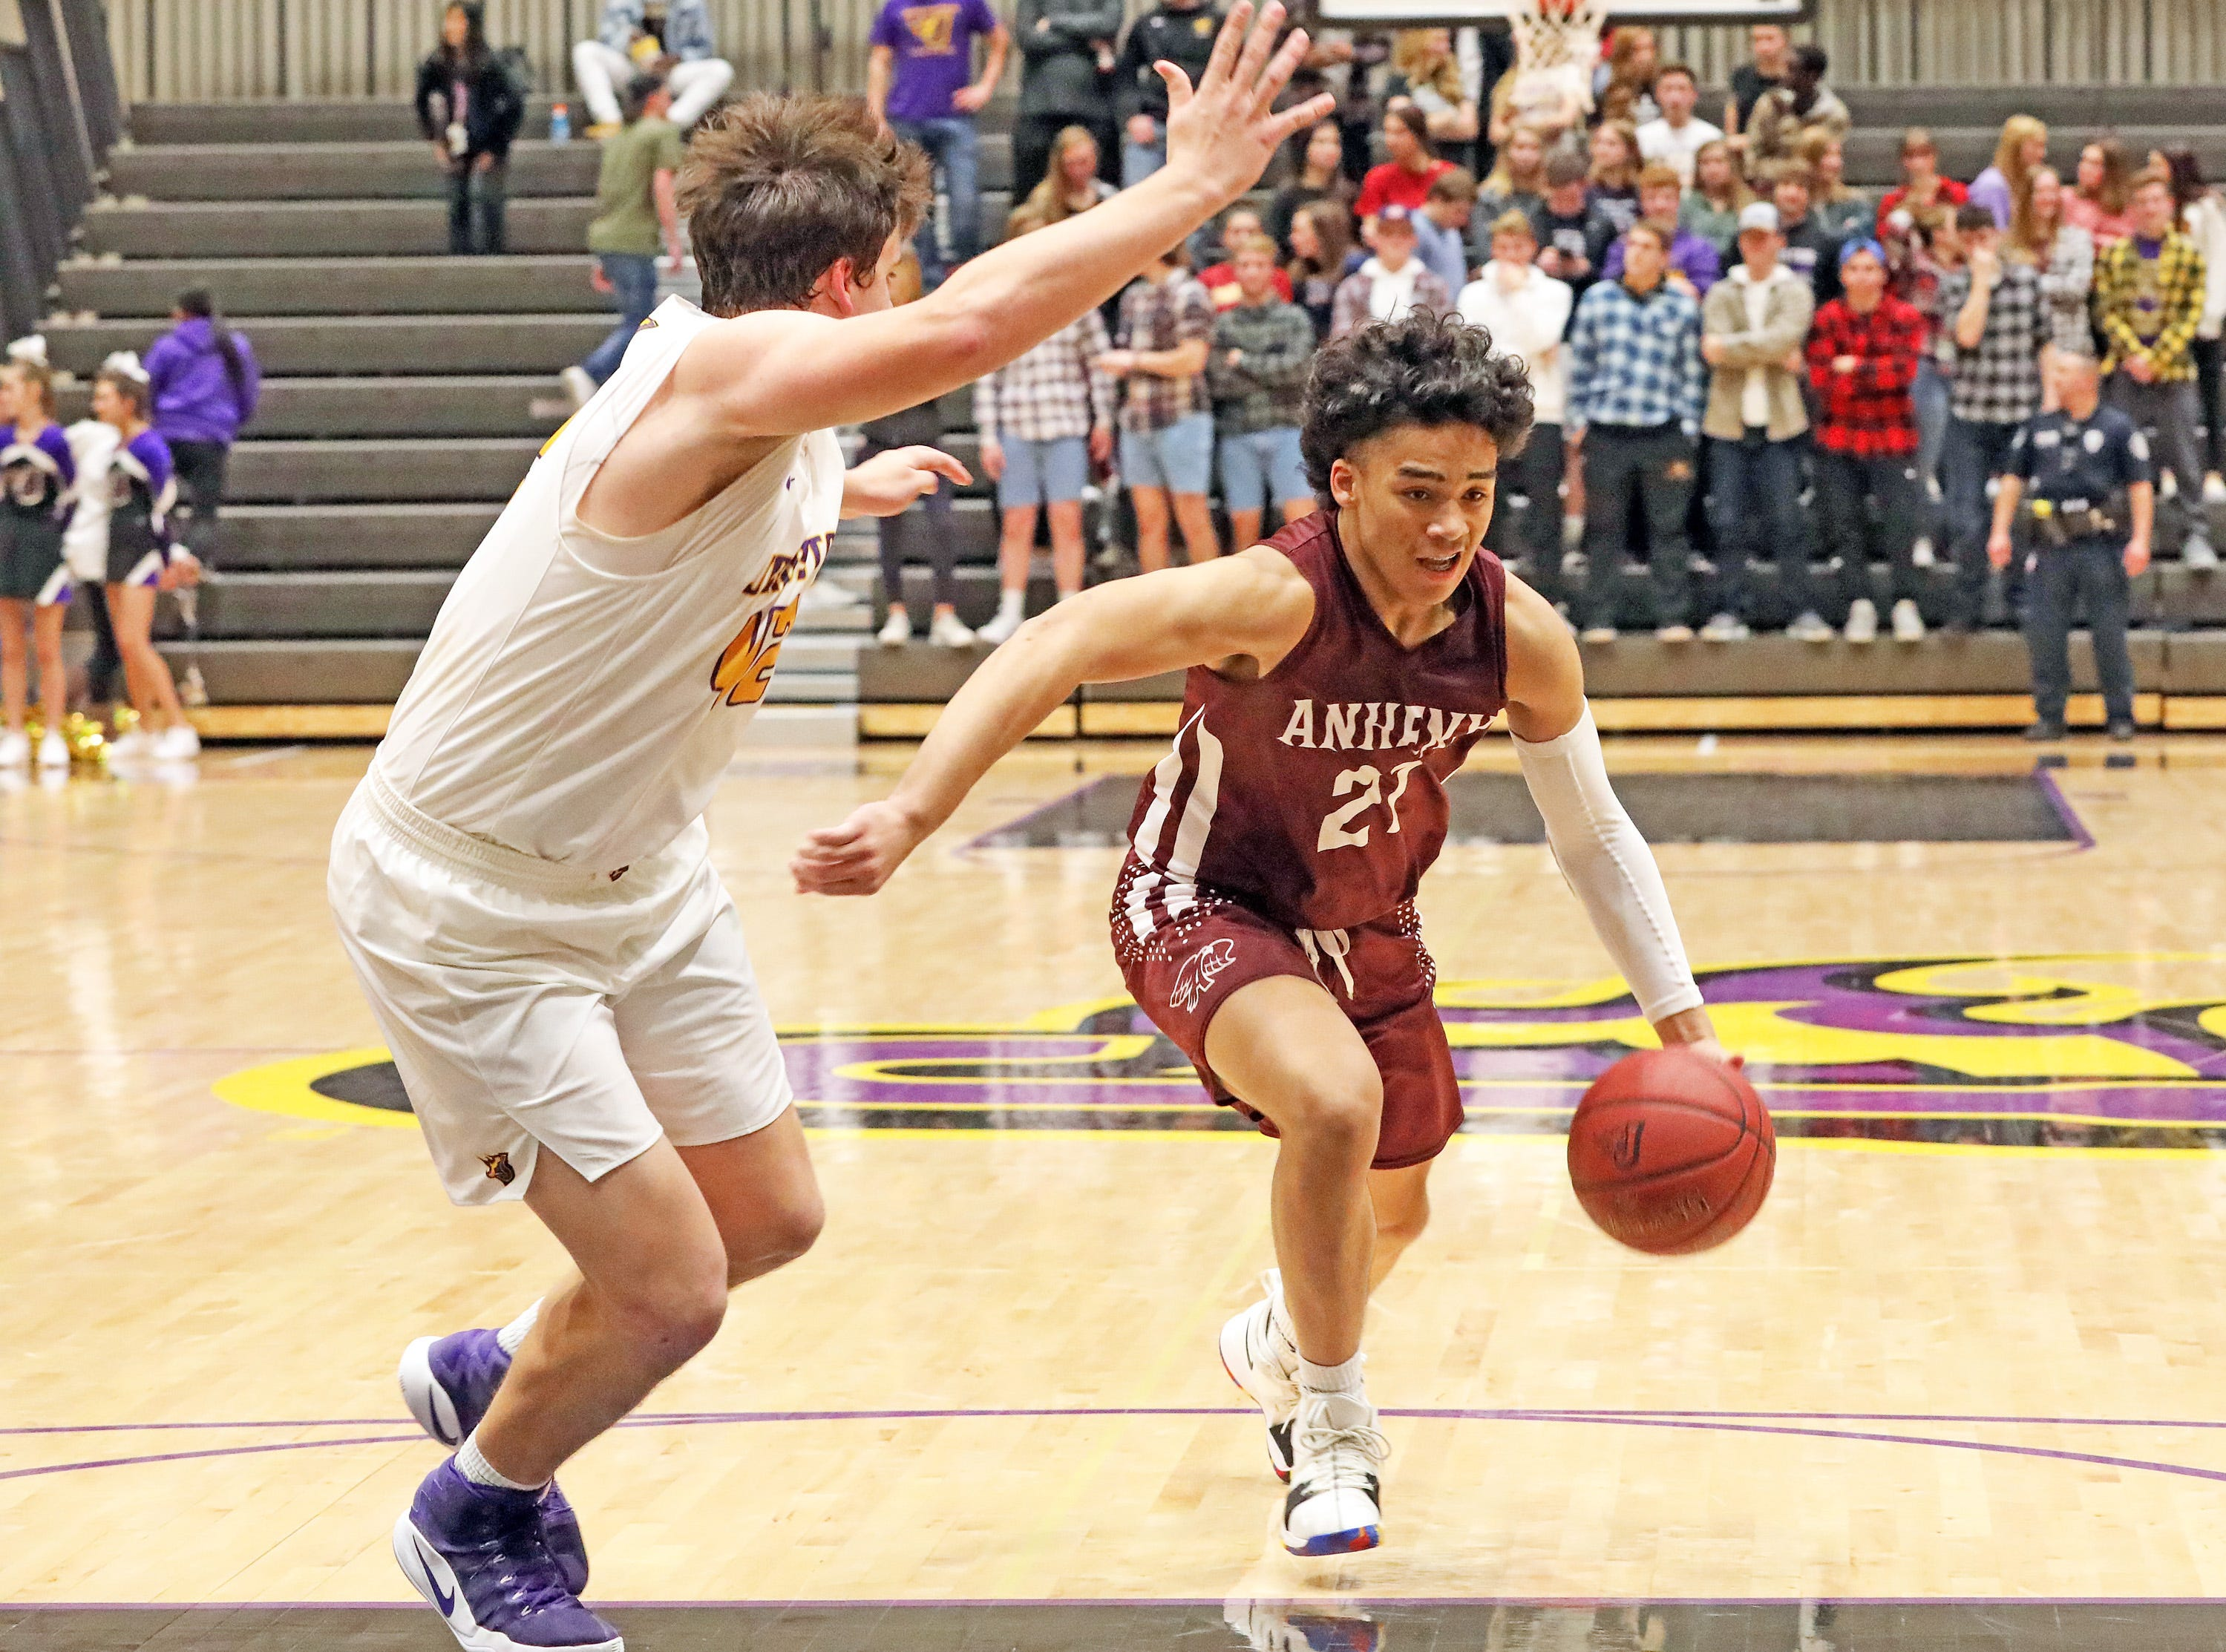 Ankeny sophomore JeRon Crews drives the lane as the Ankeny Hawks compete against the Johnston Dragons in high school basketball on Friday, Dec. 21, 2018 at Johnston High School.